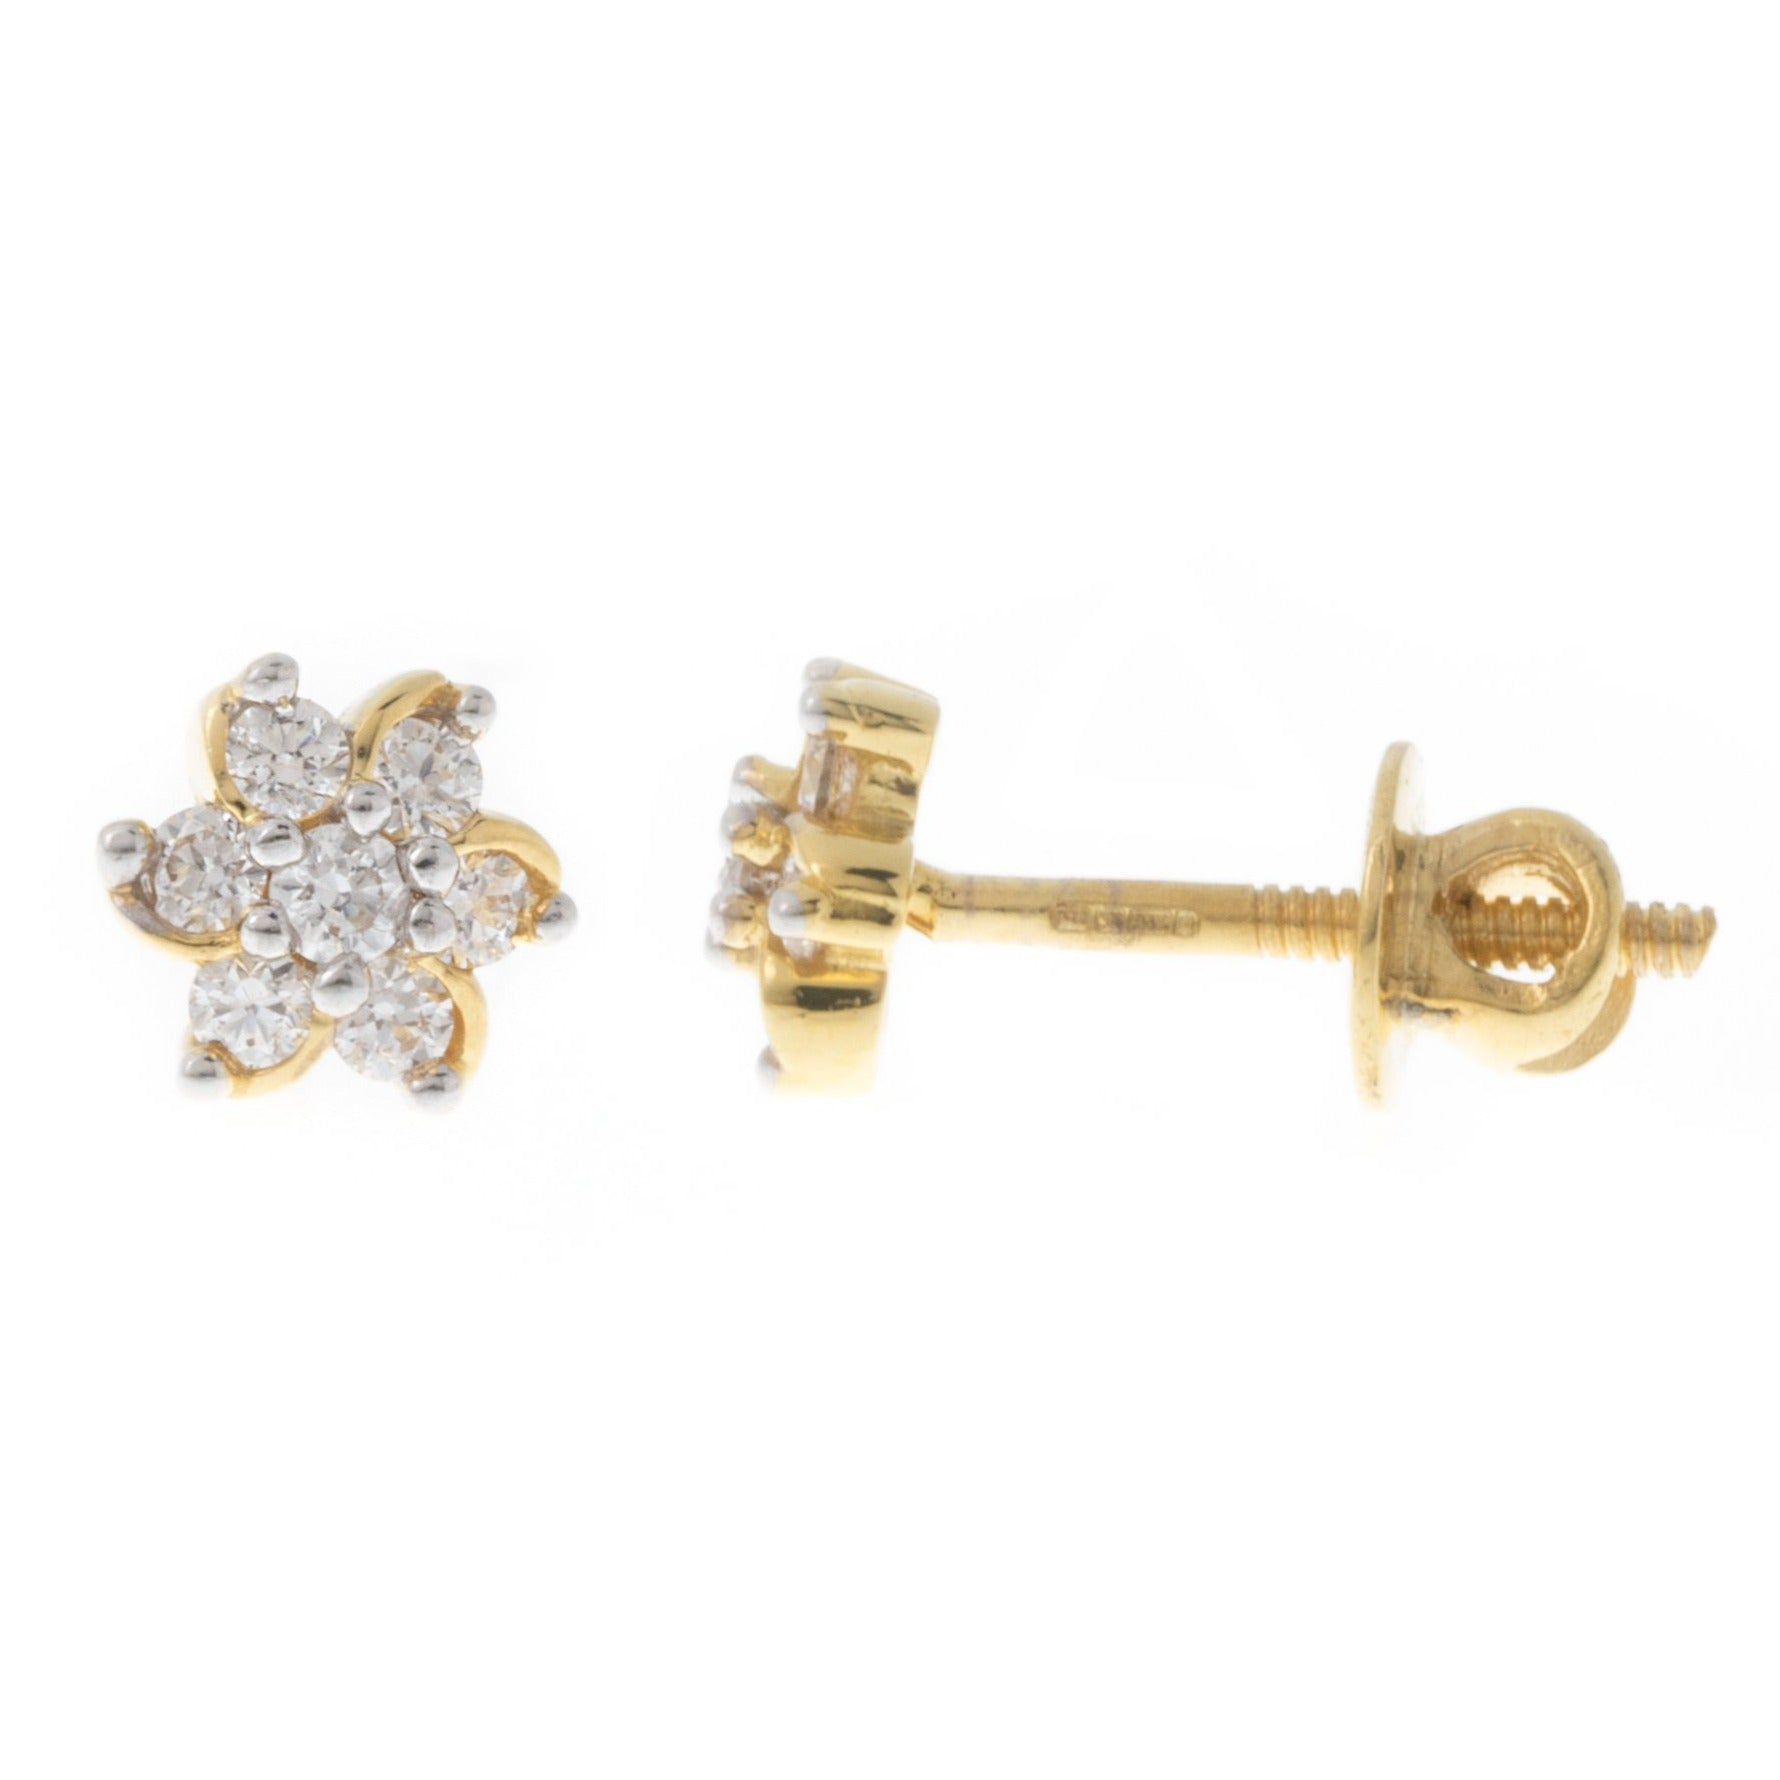 22ct Gold Stud Earrings with a flower design set with Swarovski Zirconias (1.75g) ET7011